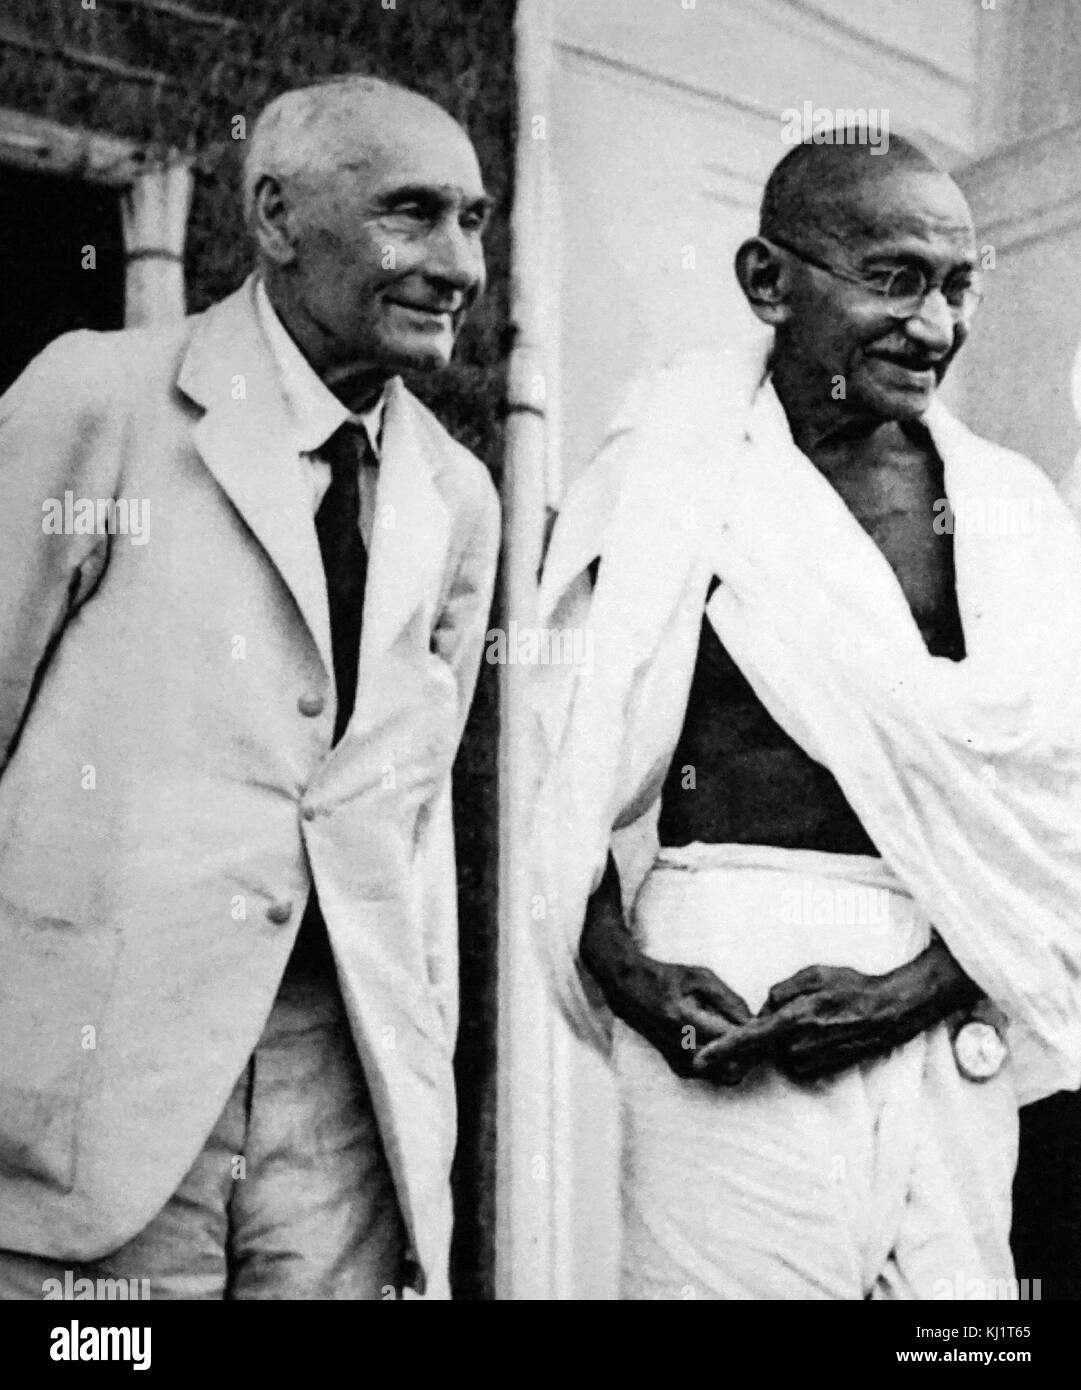 Pethwick Lawrence meets Mahatma Gandhi in 1946. Frederick William Pethick-Lawrence, Baron Pethick-Lawrence, (1871 – 1961) was a British Labour politician. From 1945 to 1947 he was Secretary of State for India and Burma, with a seat in the cabinet, and was involved in the negotiations that led to India's independence in 1947 Stock Photo